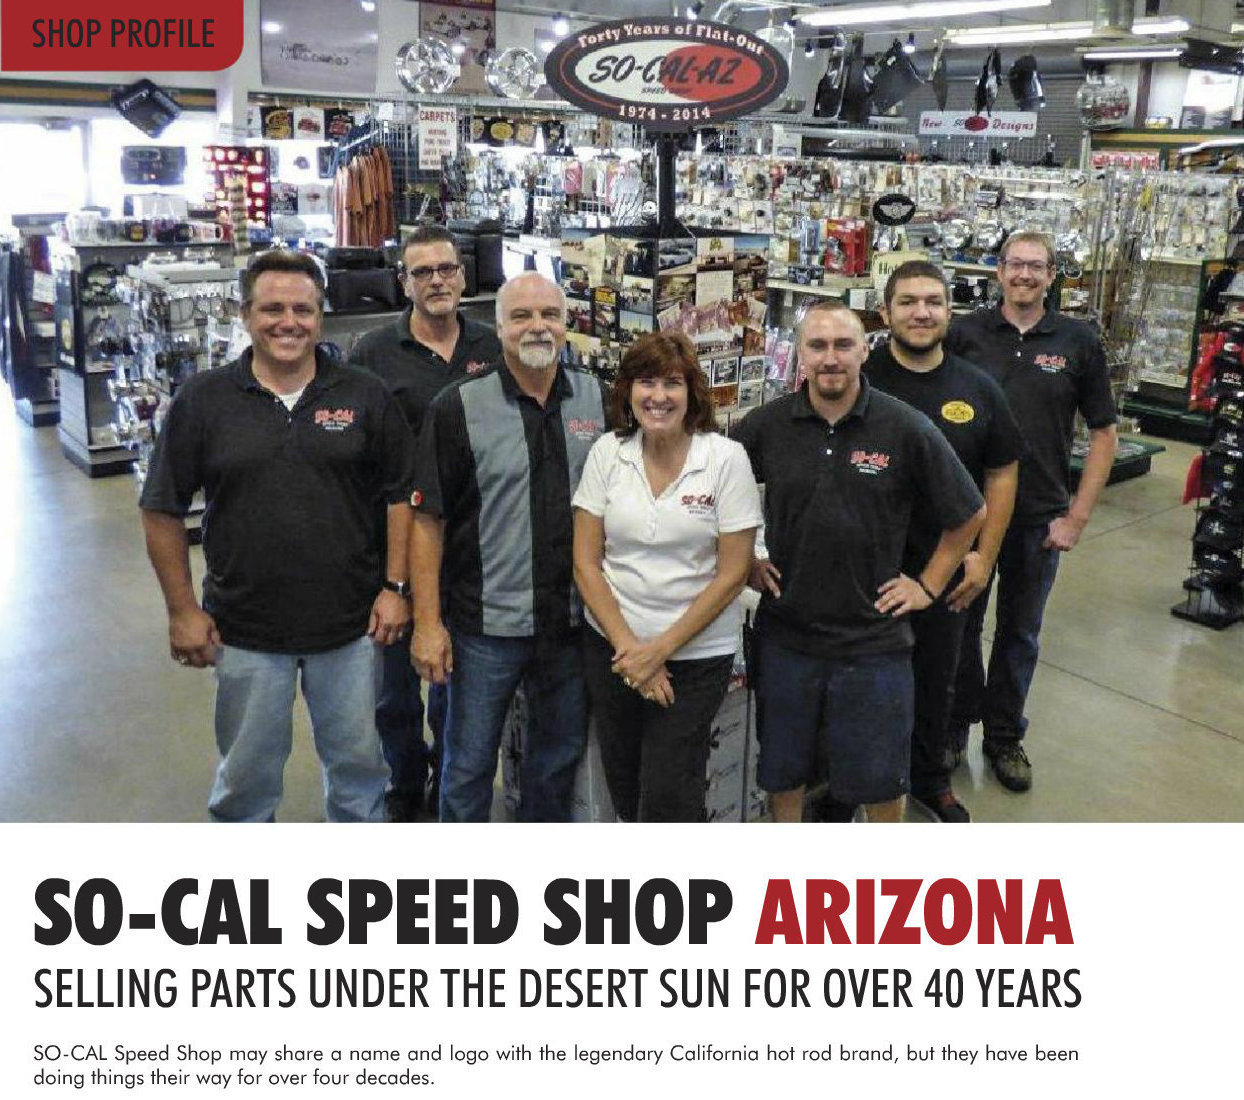 13.0-so-cal-speed-shop-arizona-goodguys-gazette-april-2015.jpg